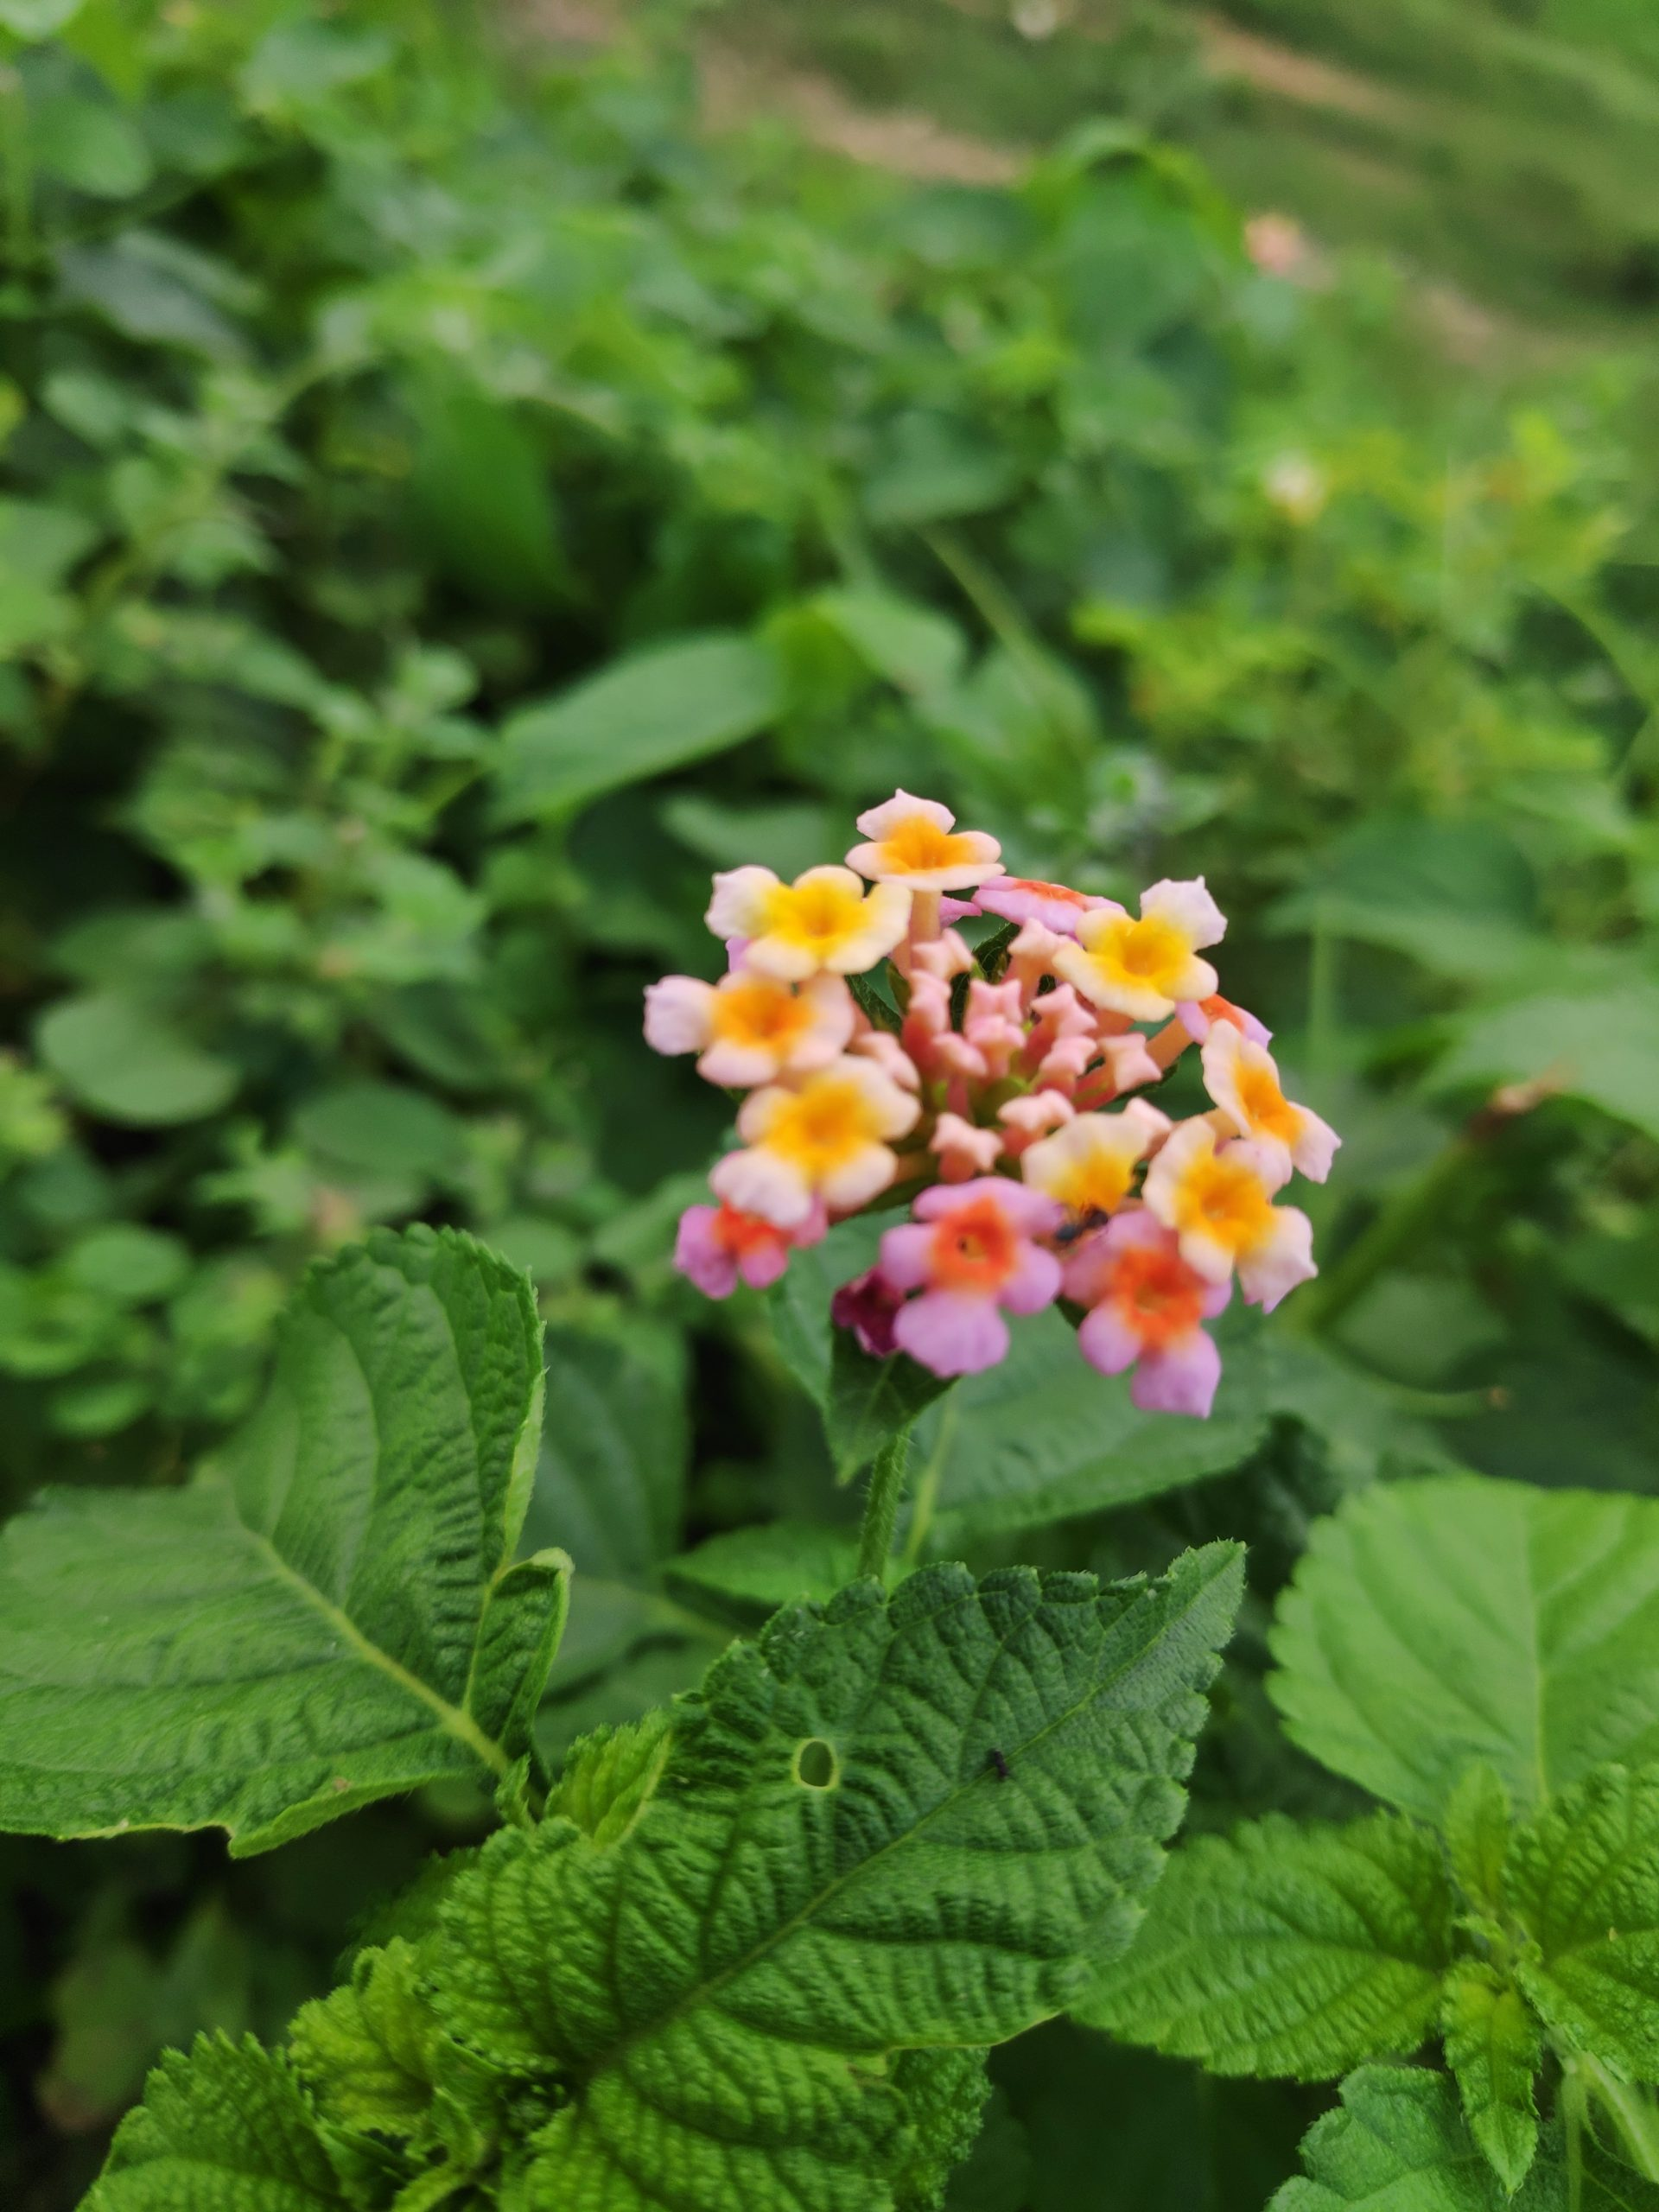 Flowers of a plant